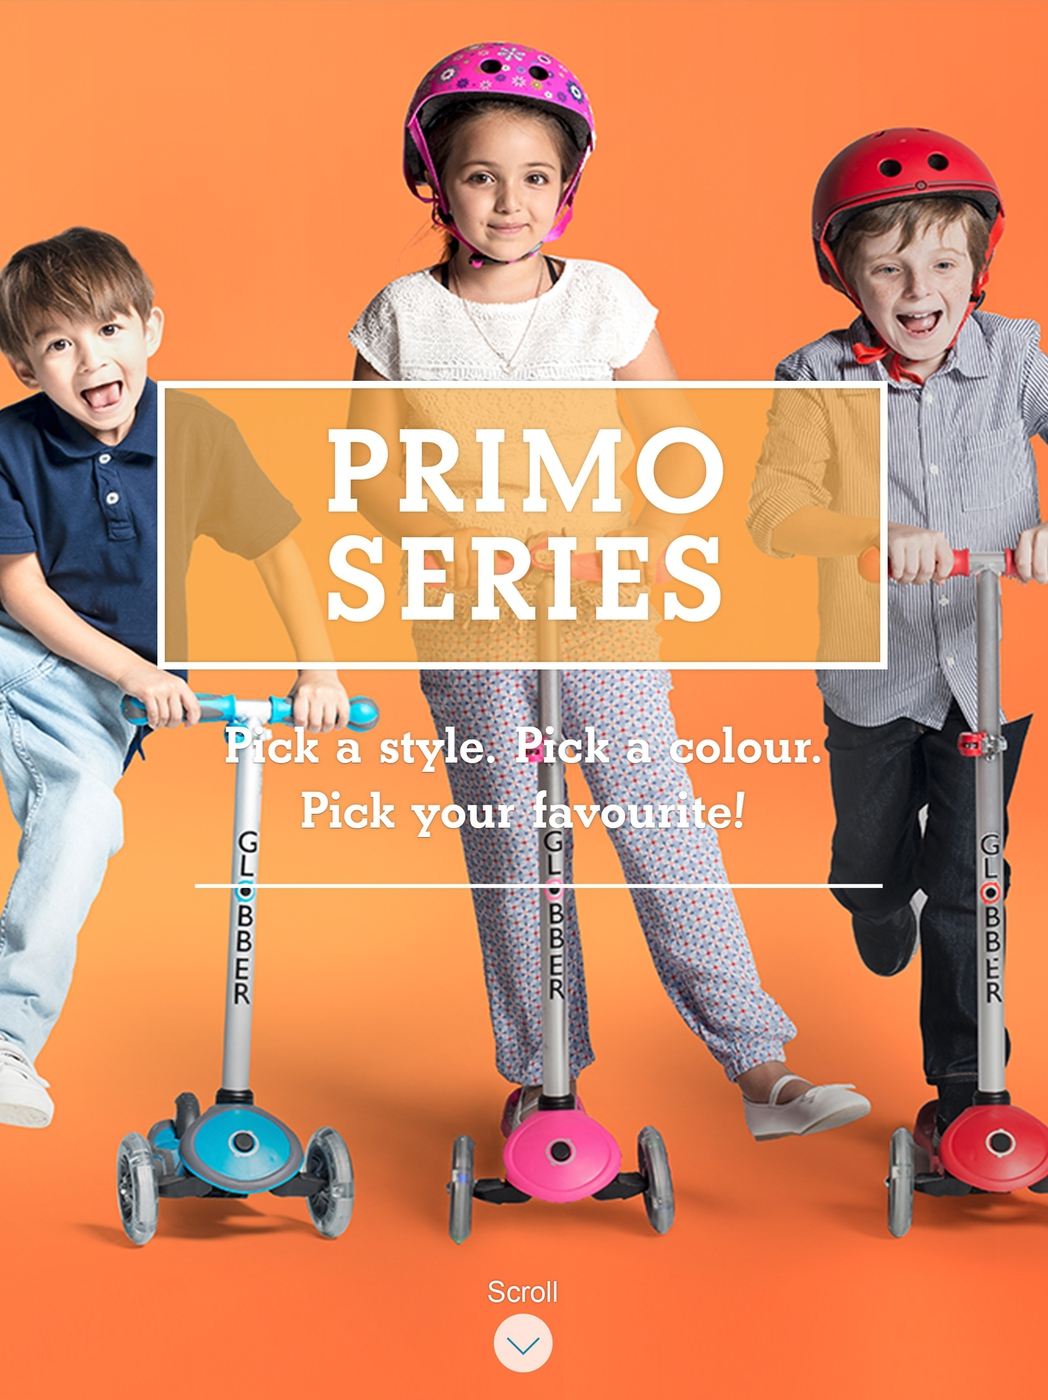 Stylish 3-wheel scooters for kids